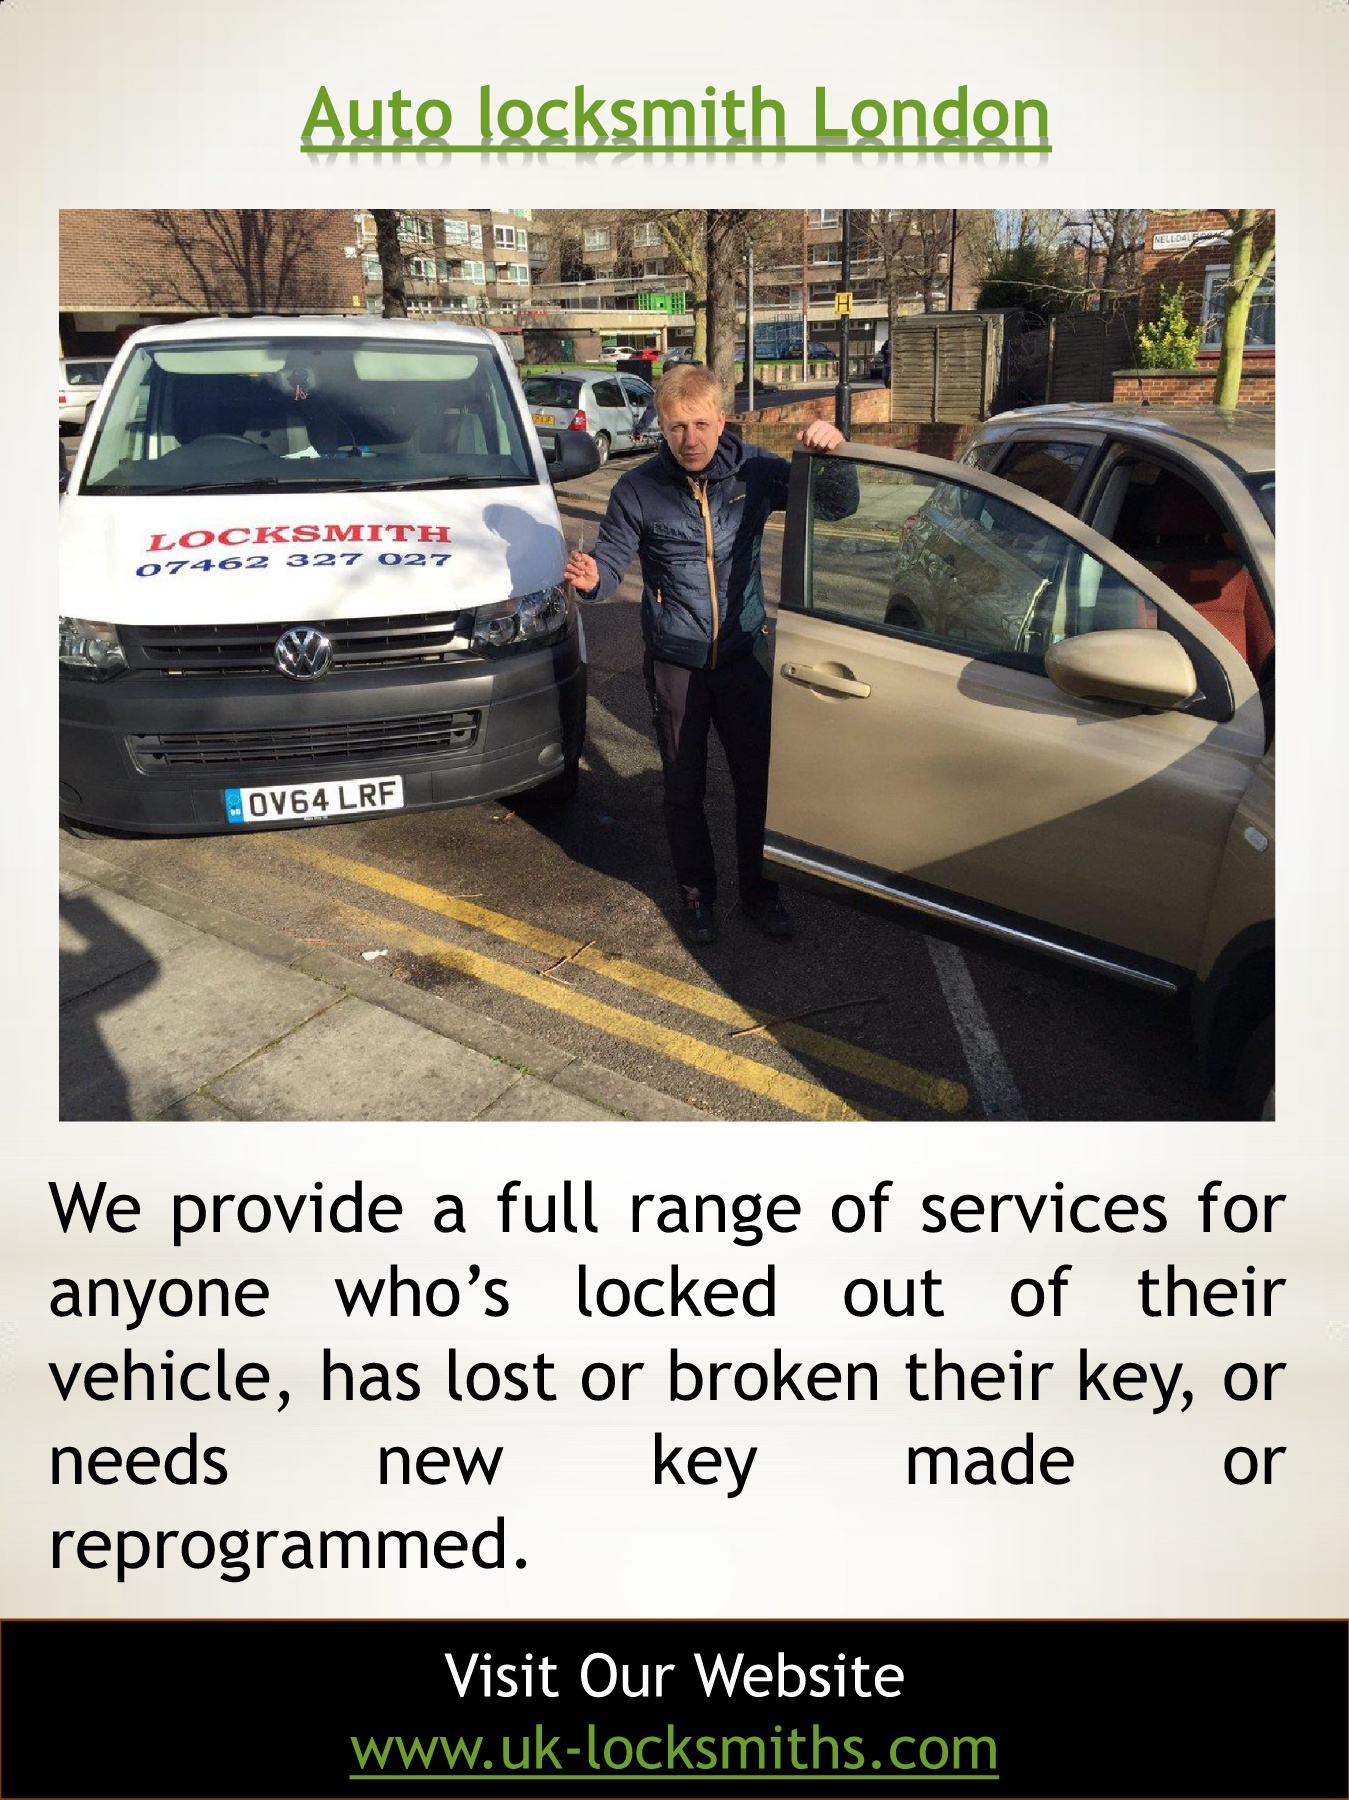 Car Keys Replacement Cost South London | Call - 07462 327 027 | uk